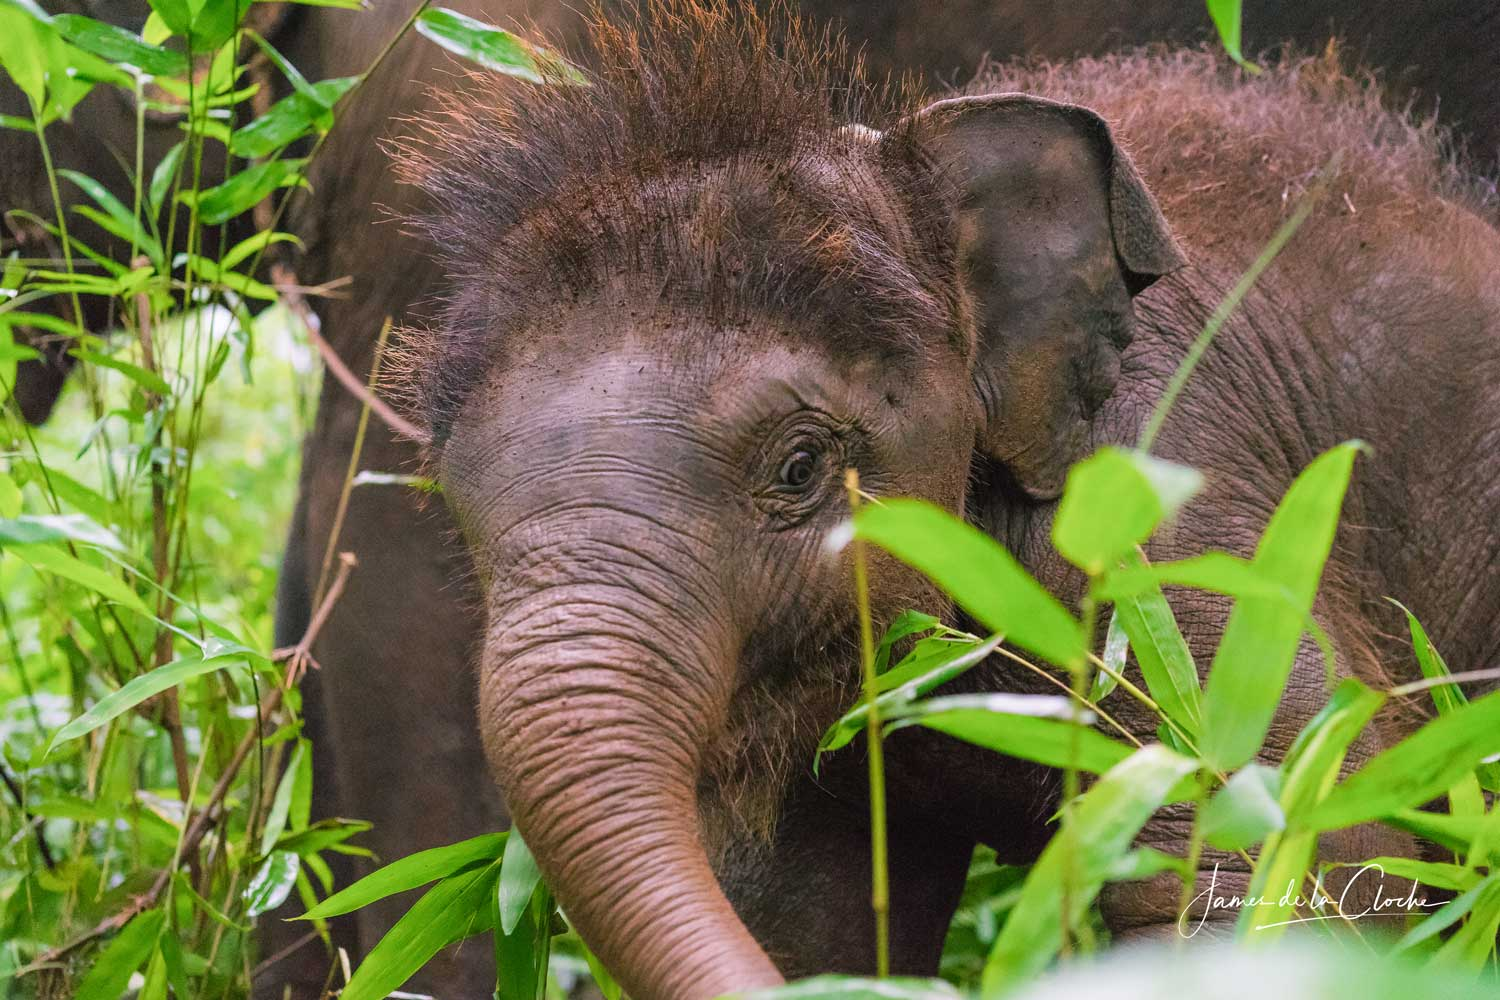 Elephants at Chai Lai Orchid